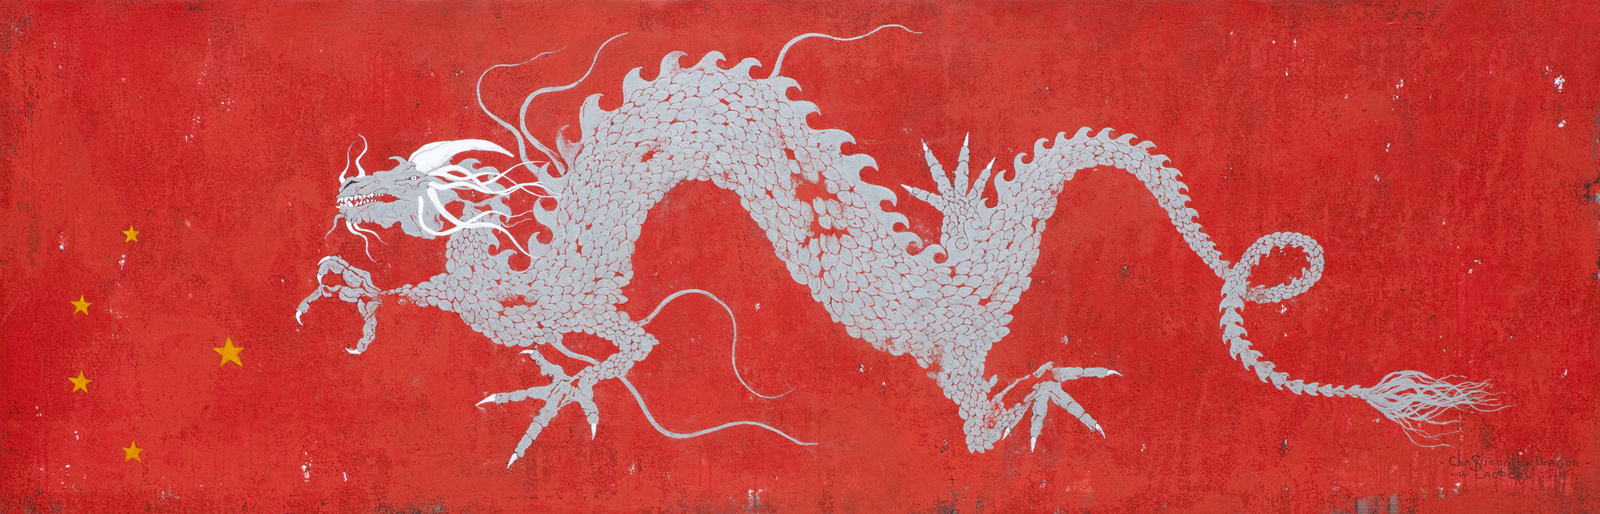 Chasing the dragon with Lao Tzu, 2010 100 x 300 cm / 39.3 x 118 inches Pigments / Canvas